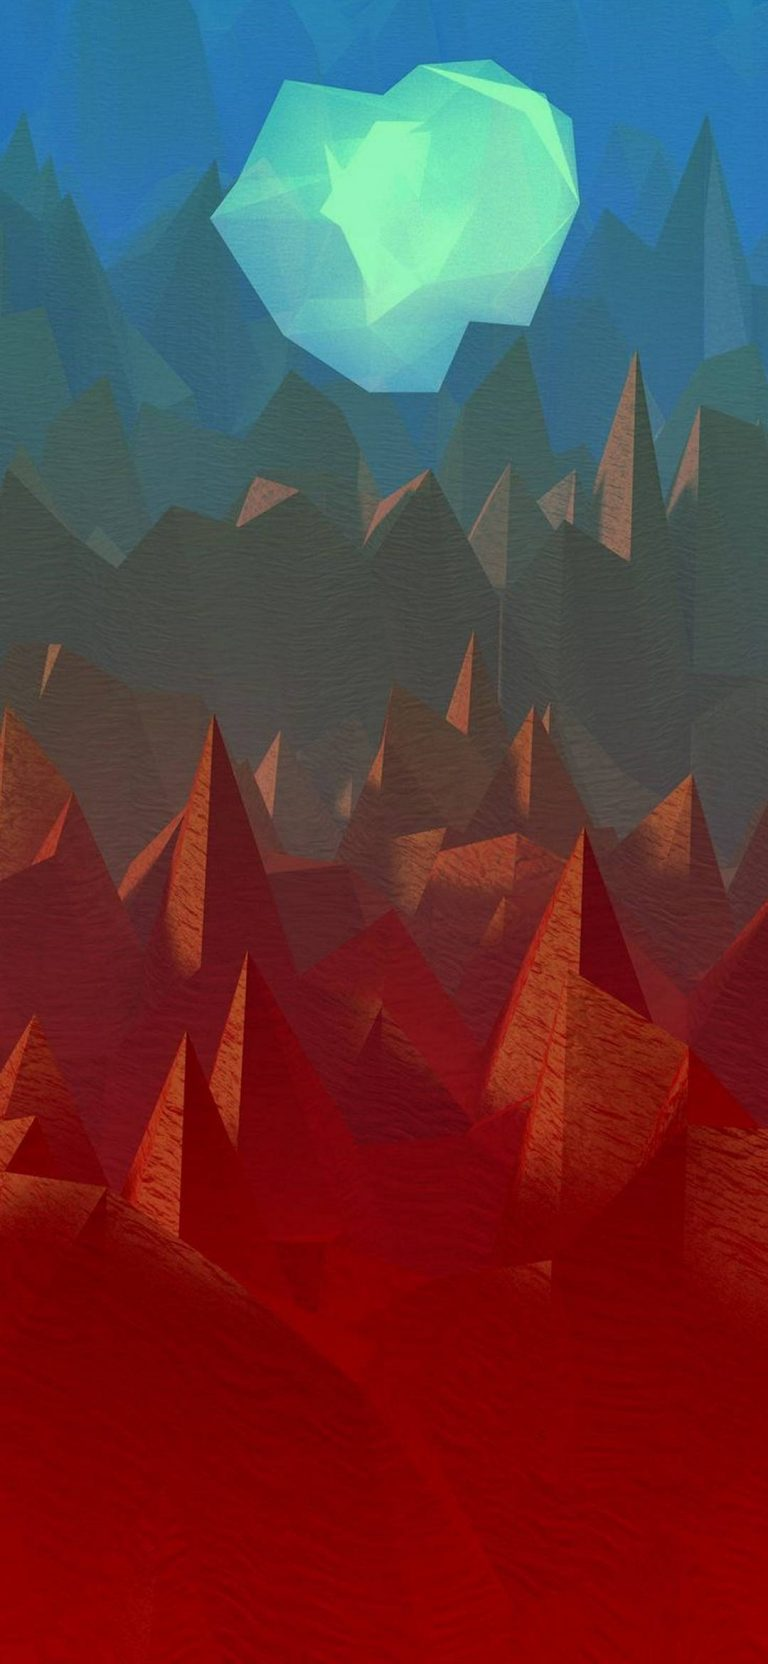 Polygon Art Abstract 1080x2340 768x1664